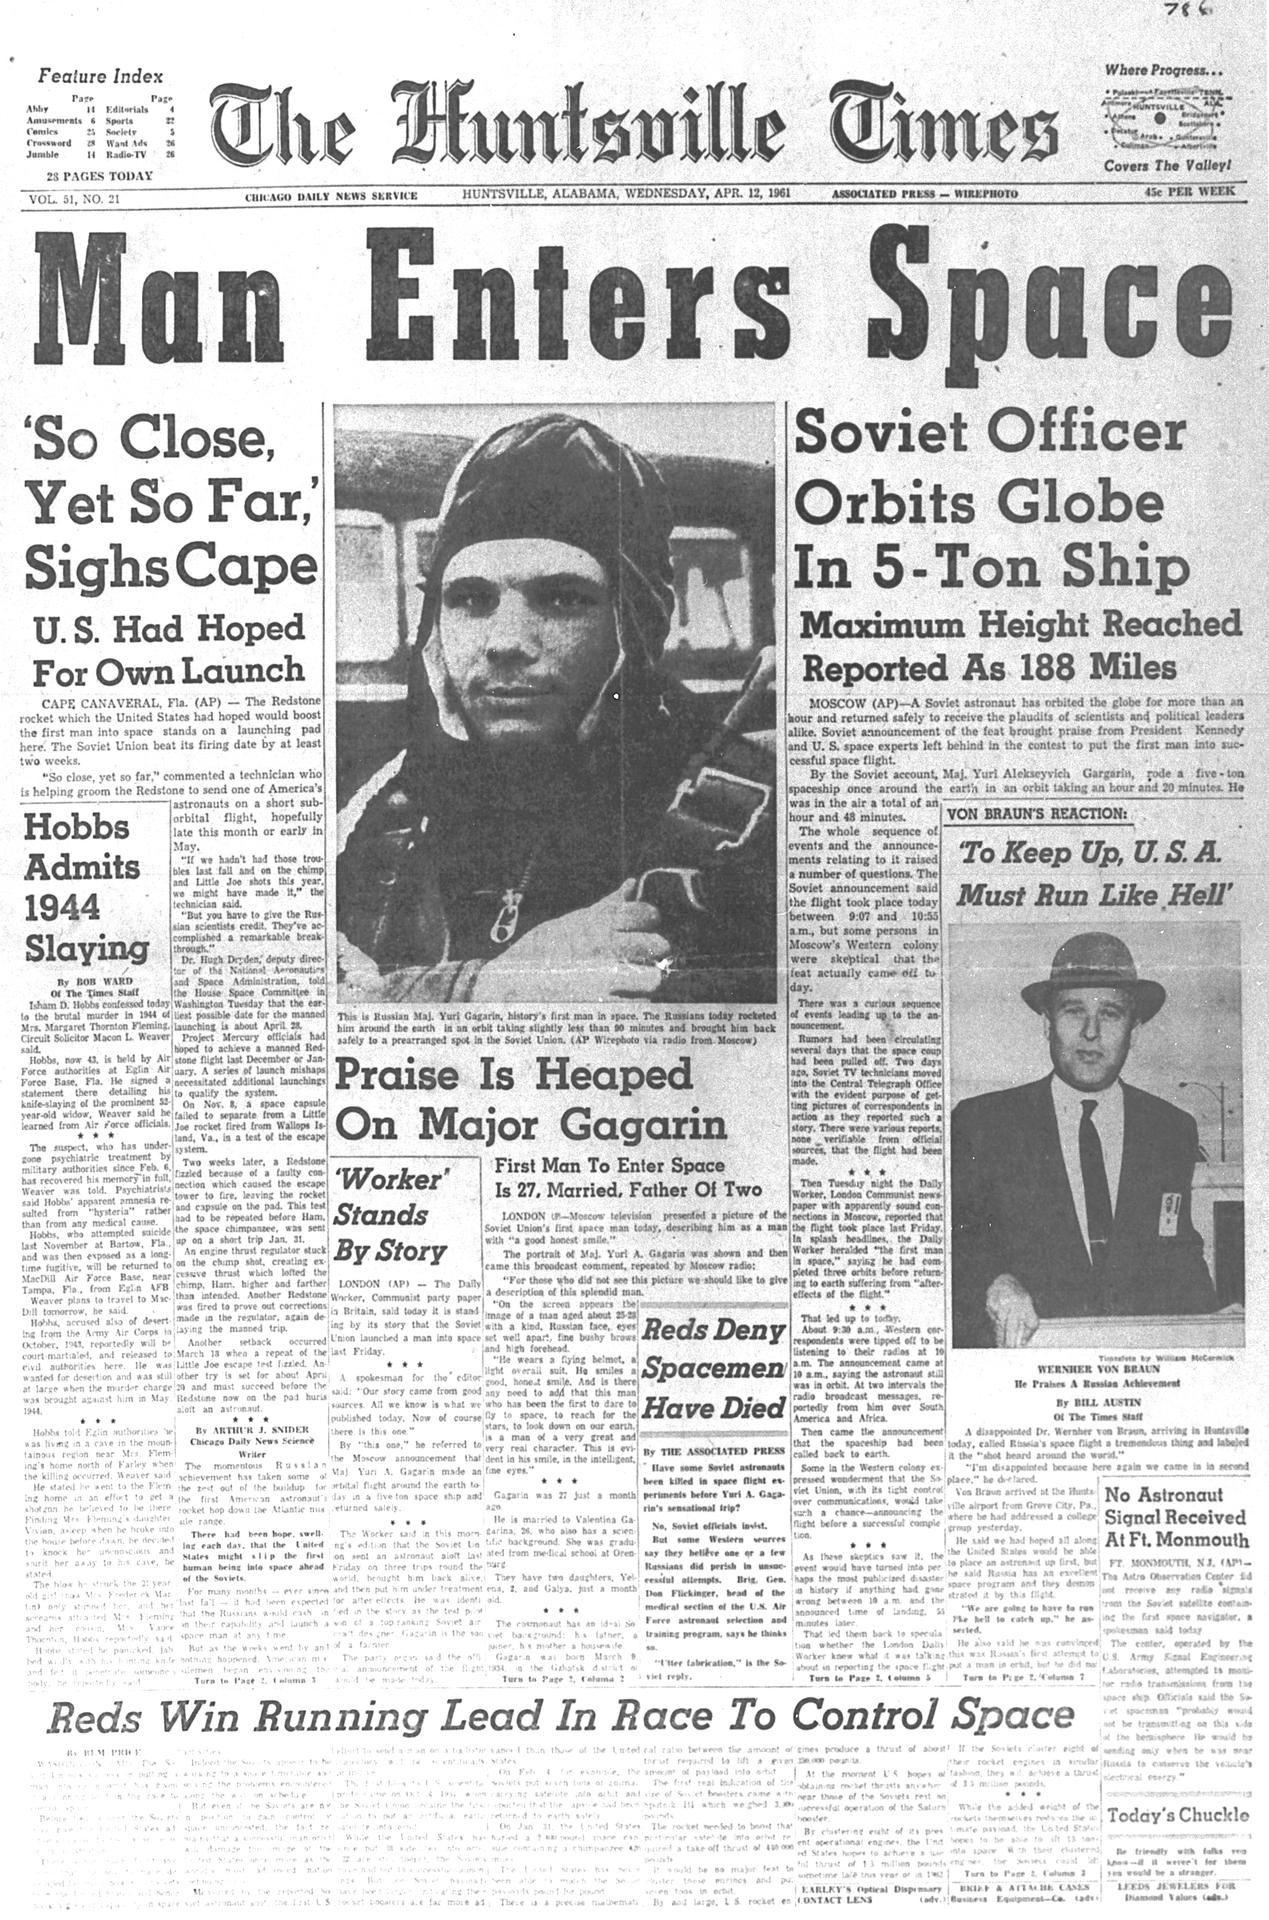 The April 12, 1961 edition of the Huntsville Times covers the flight of Yuri Gagarin.